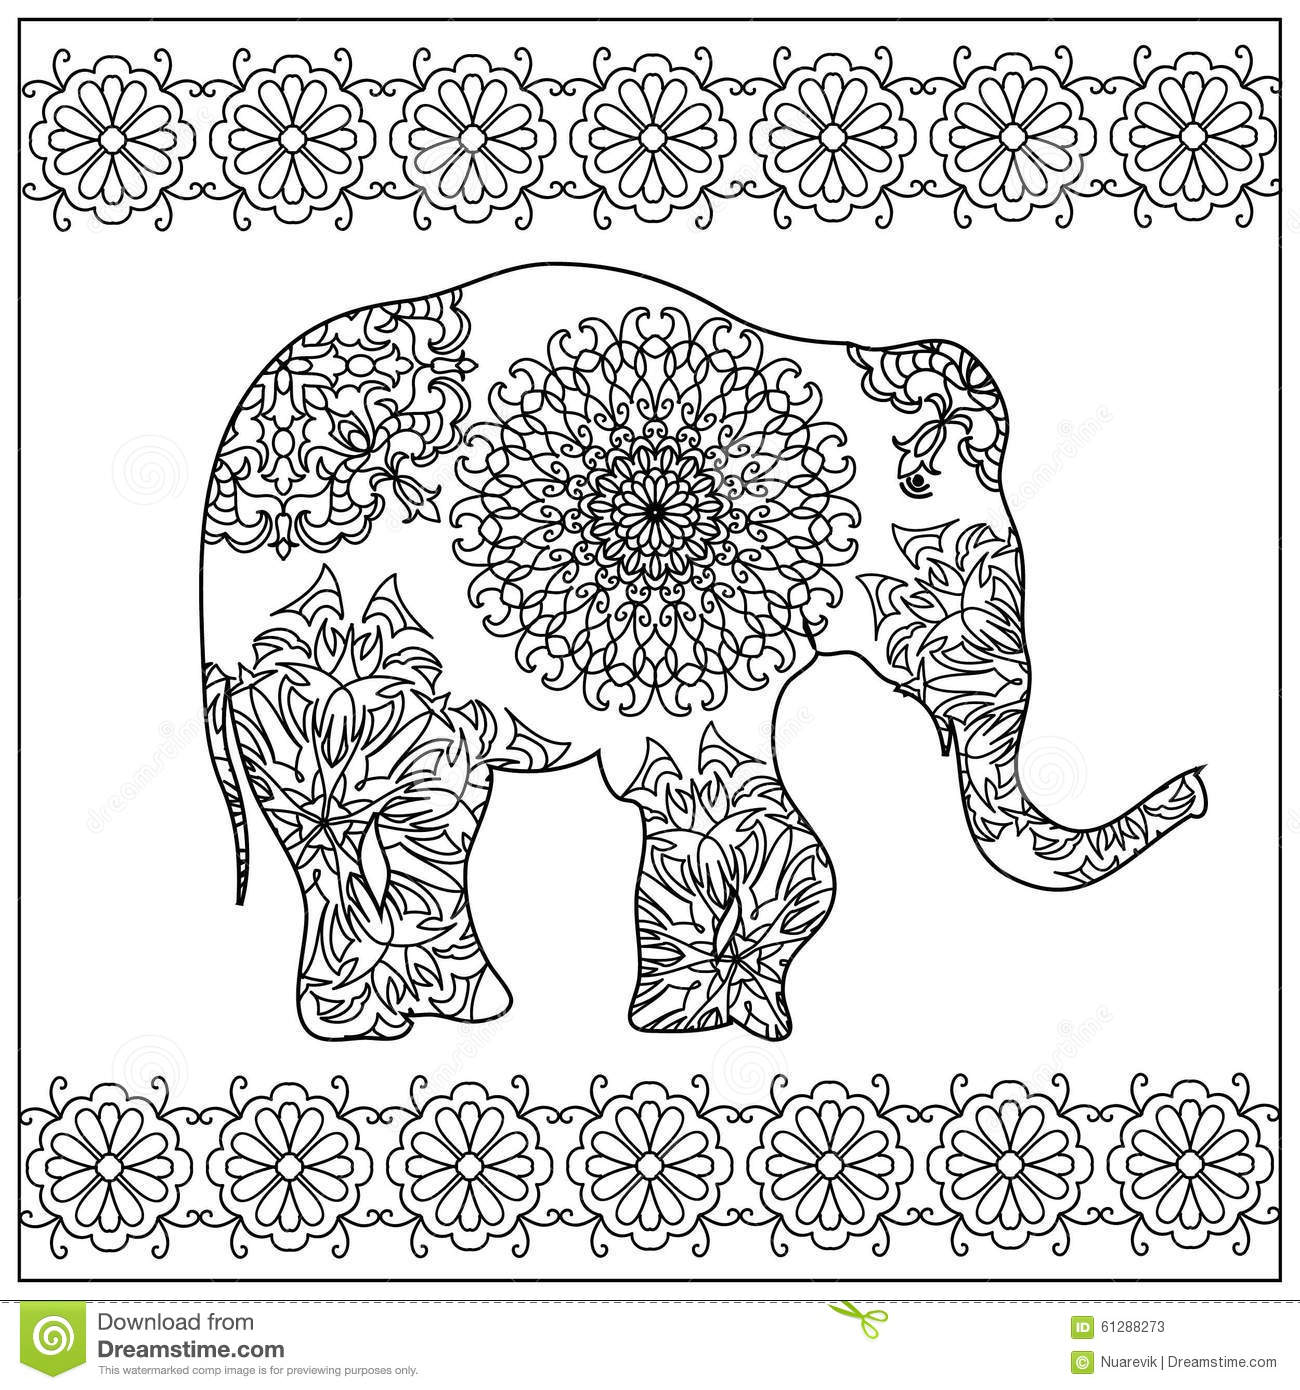 elephant zentangle coloring page - Coloring Pages Indian Elephants